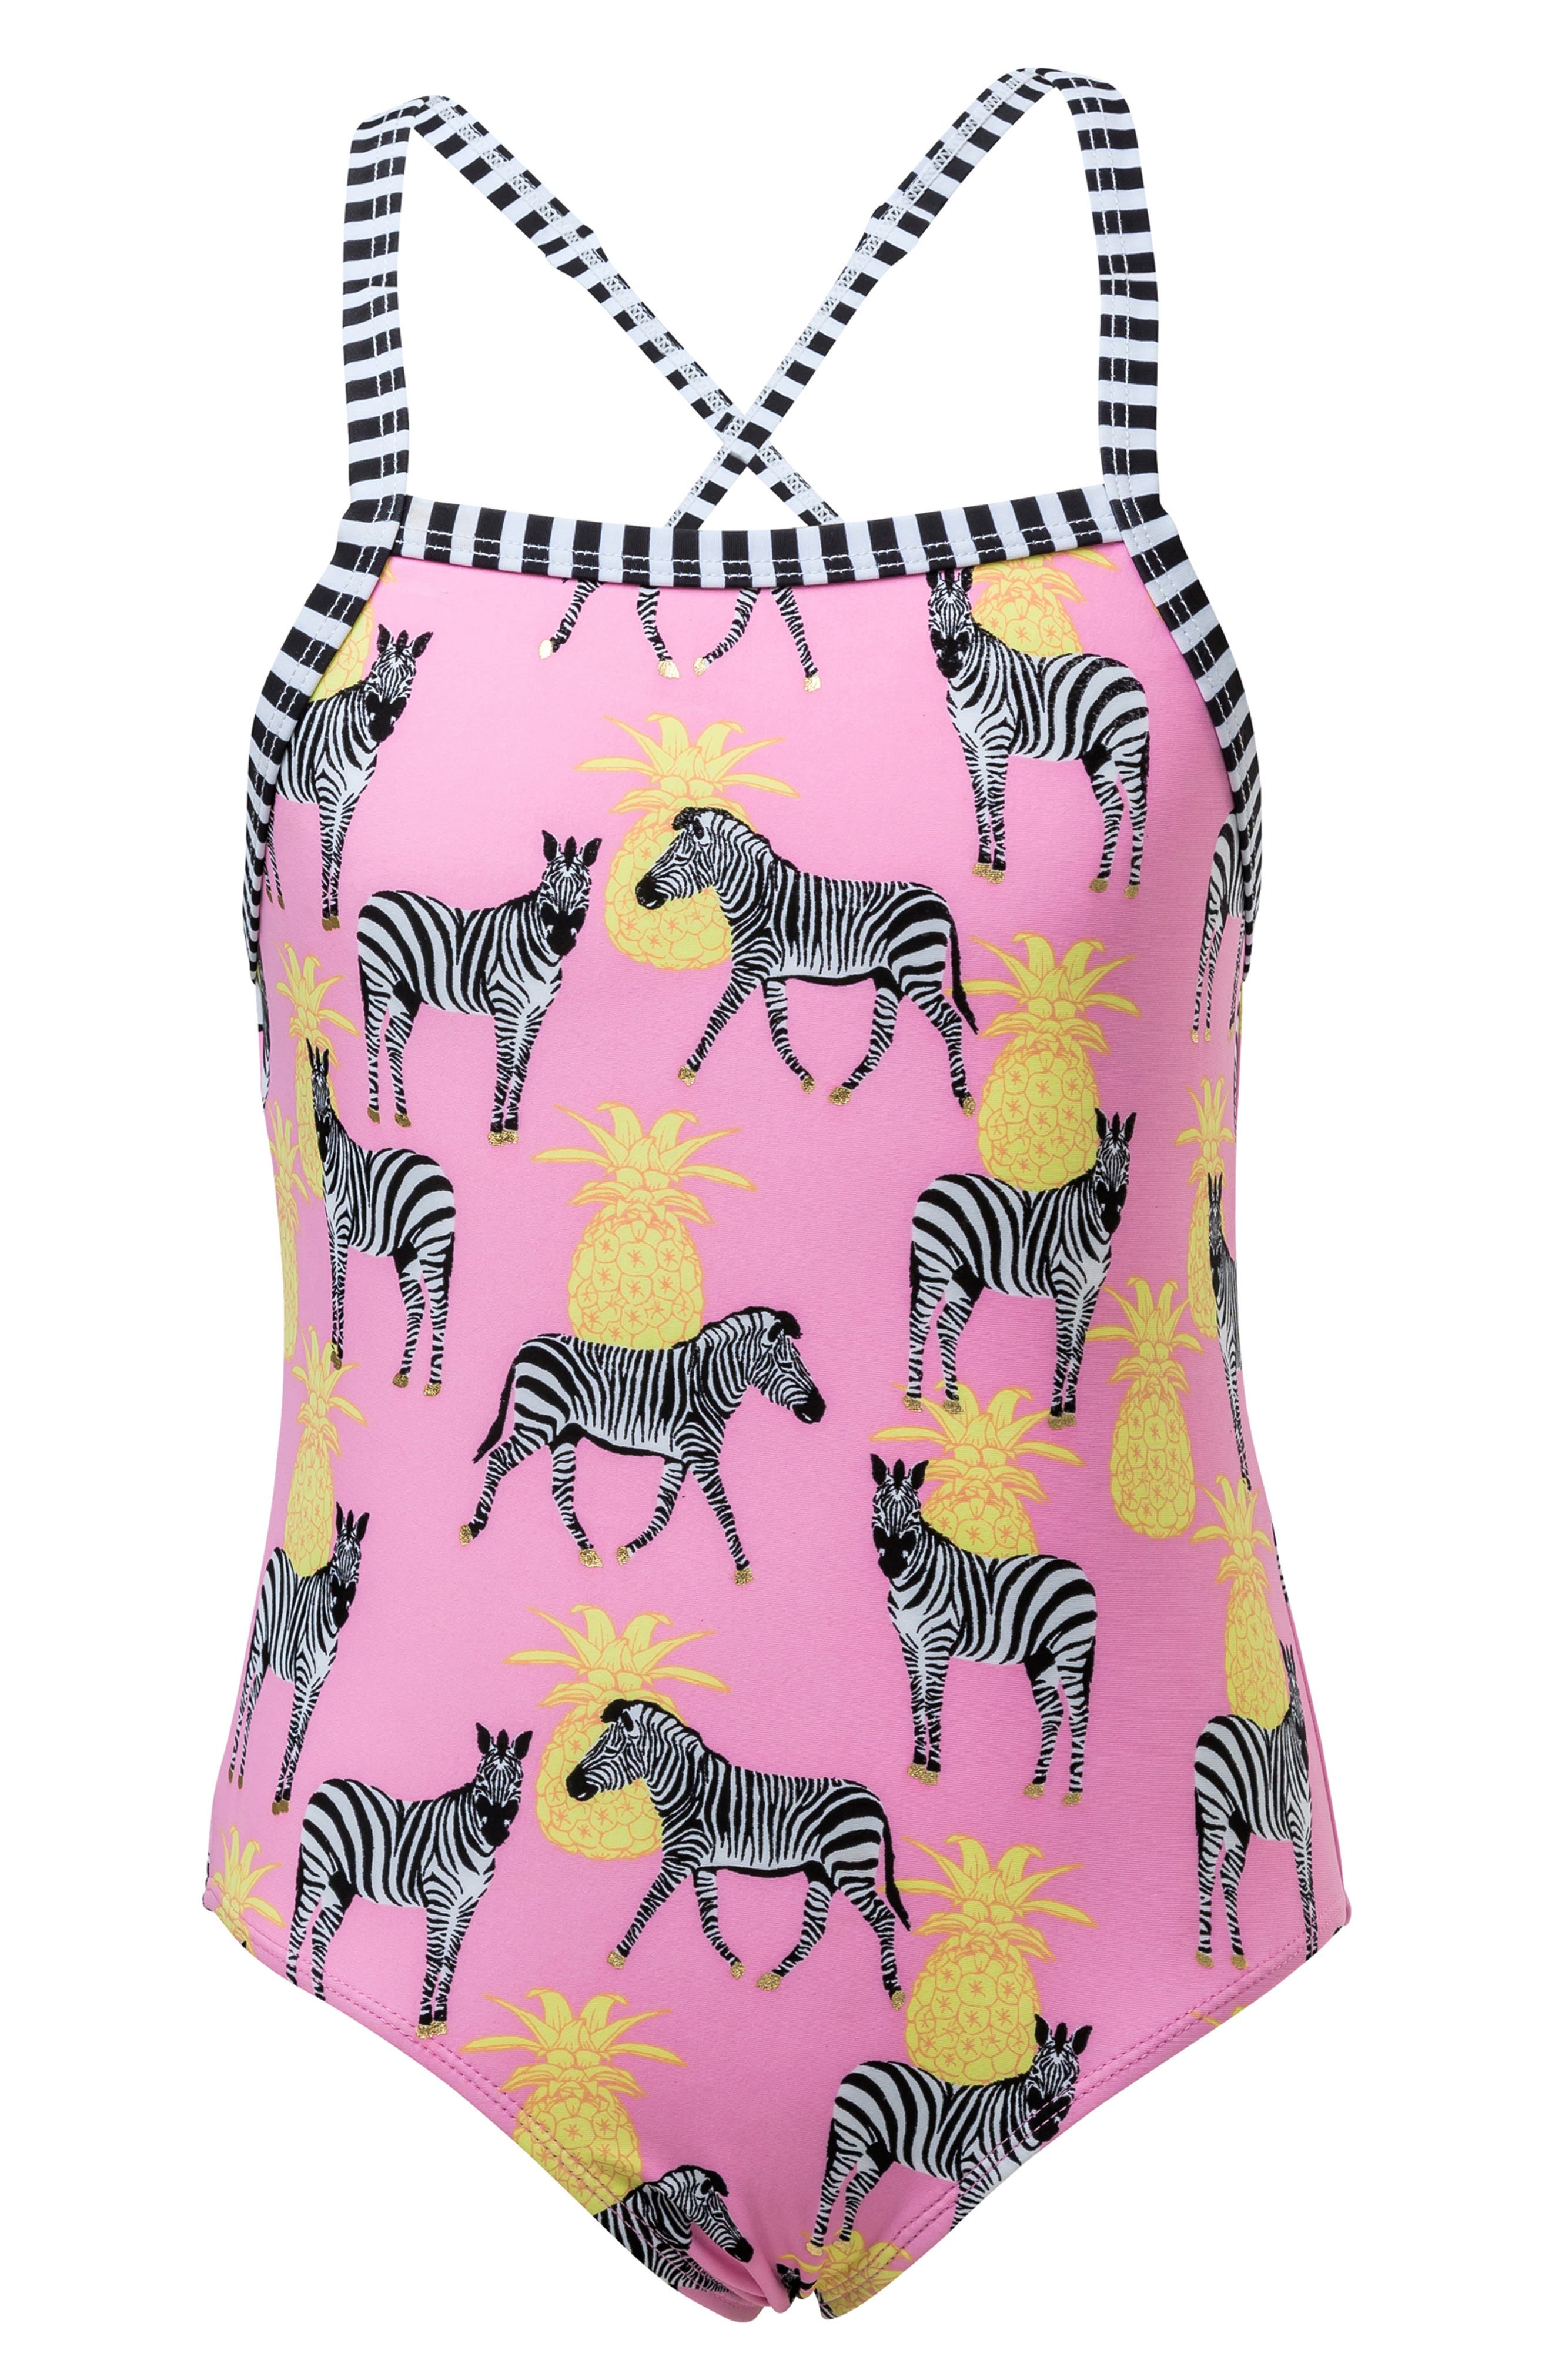 Toddler Girls Snapper Rock Zebra Pineapple OnePiece Swimsuit Size 3T  Yellow